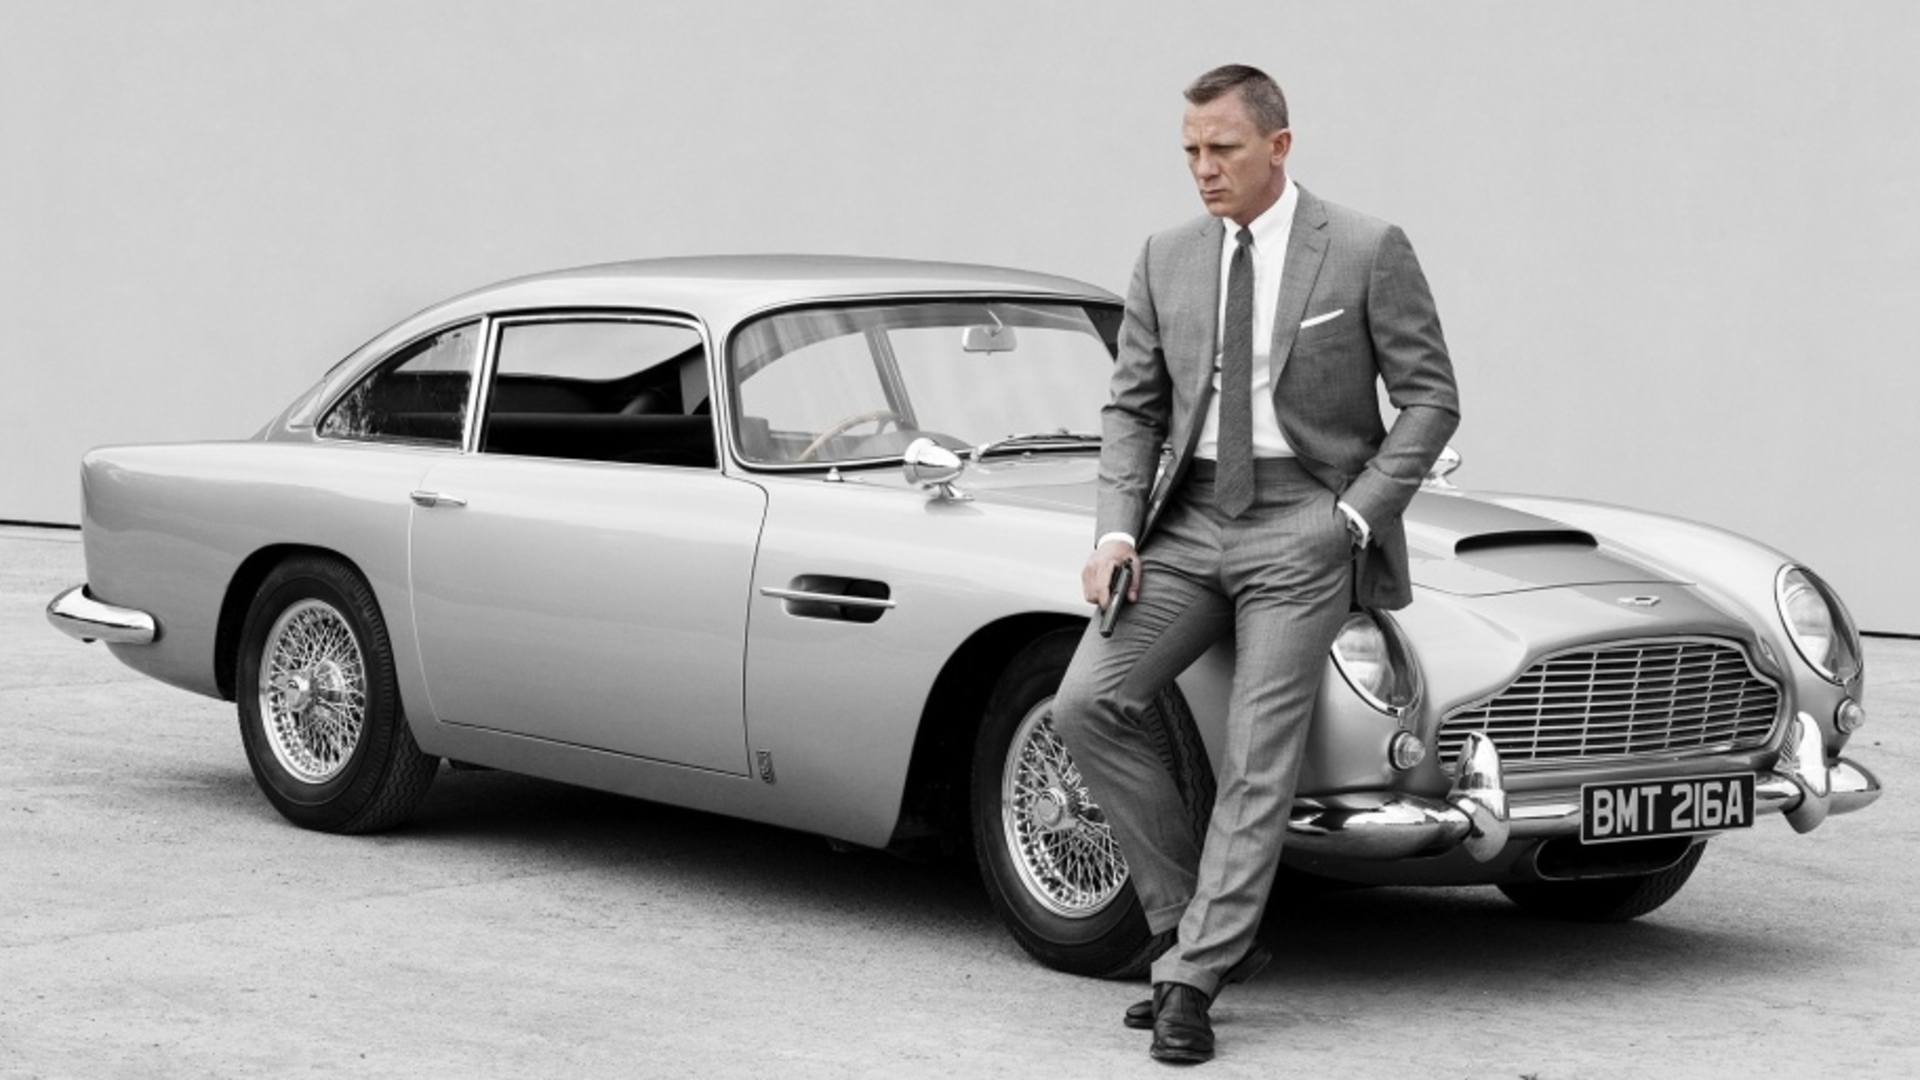 Forza Horizon 4 is ting James Bond DLC • Eurogamer